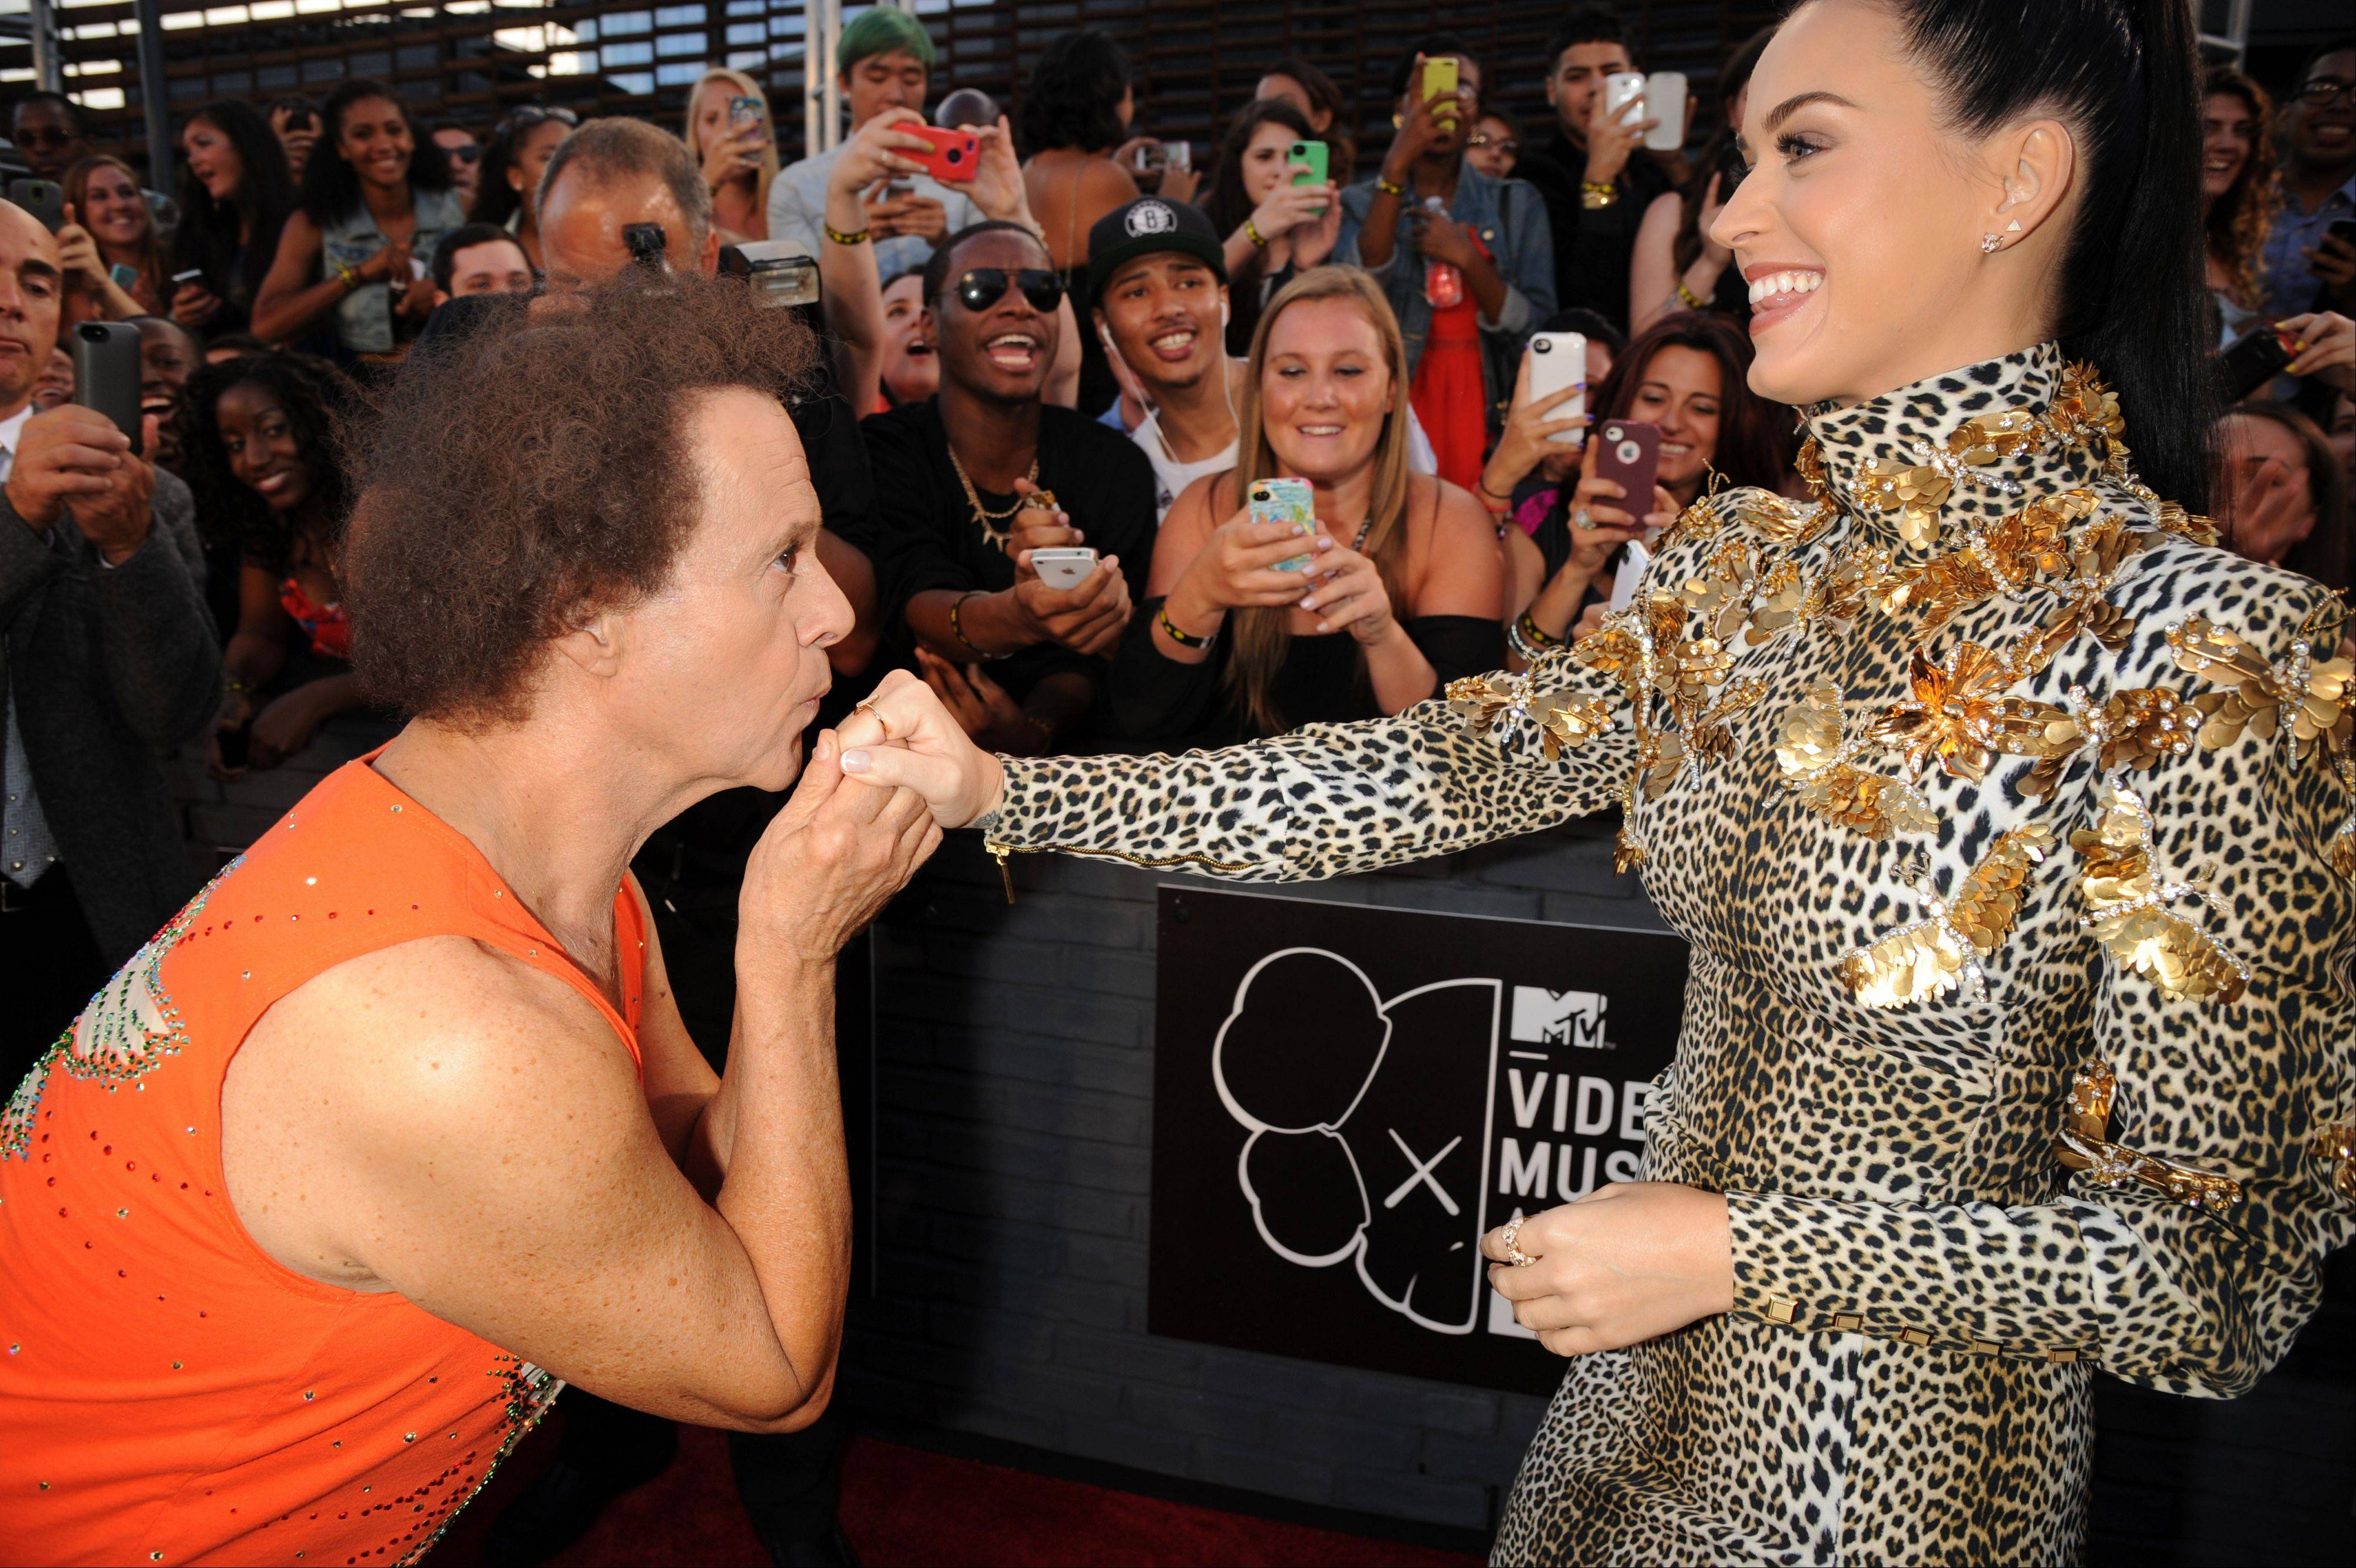 Fitness guru Richard Simmons, left, kisses the hand of singer Katy Perry at the MTV Video Music Awards on Sunday, Aug. 25, 2013, at the Barclays Center in the Brooklyn borough of New York.